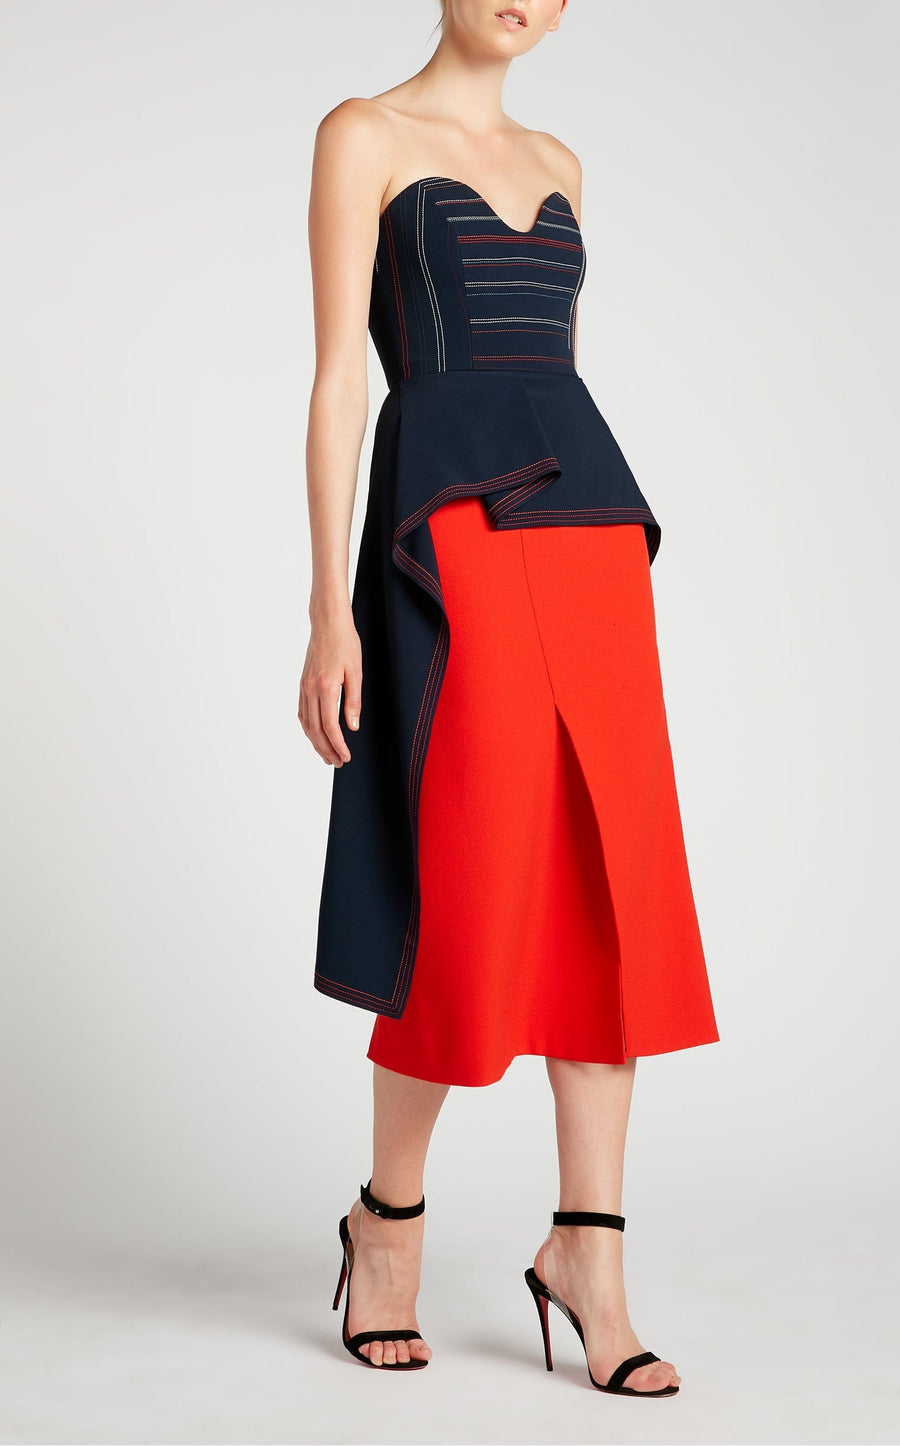 Abrams Skirt In Poppy Red from Roland Mouret